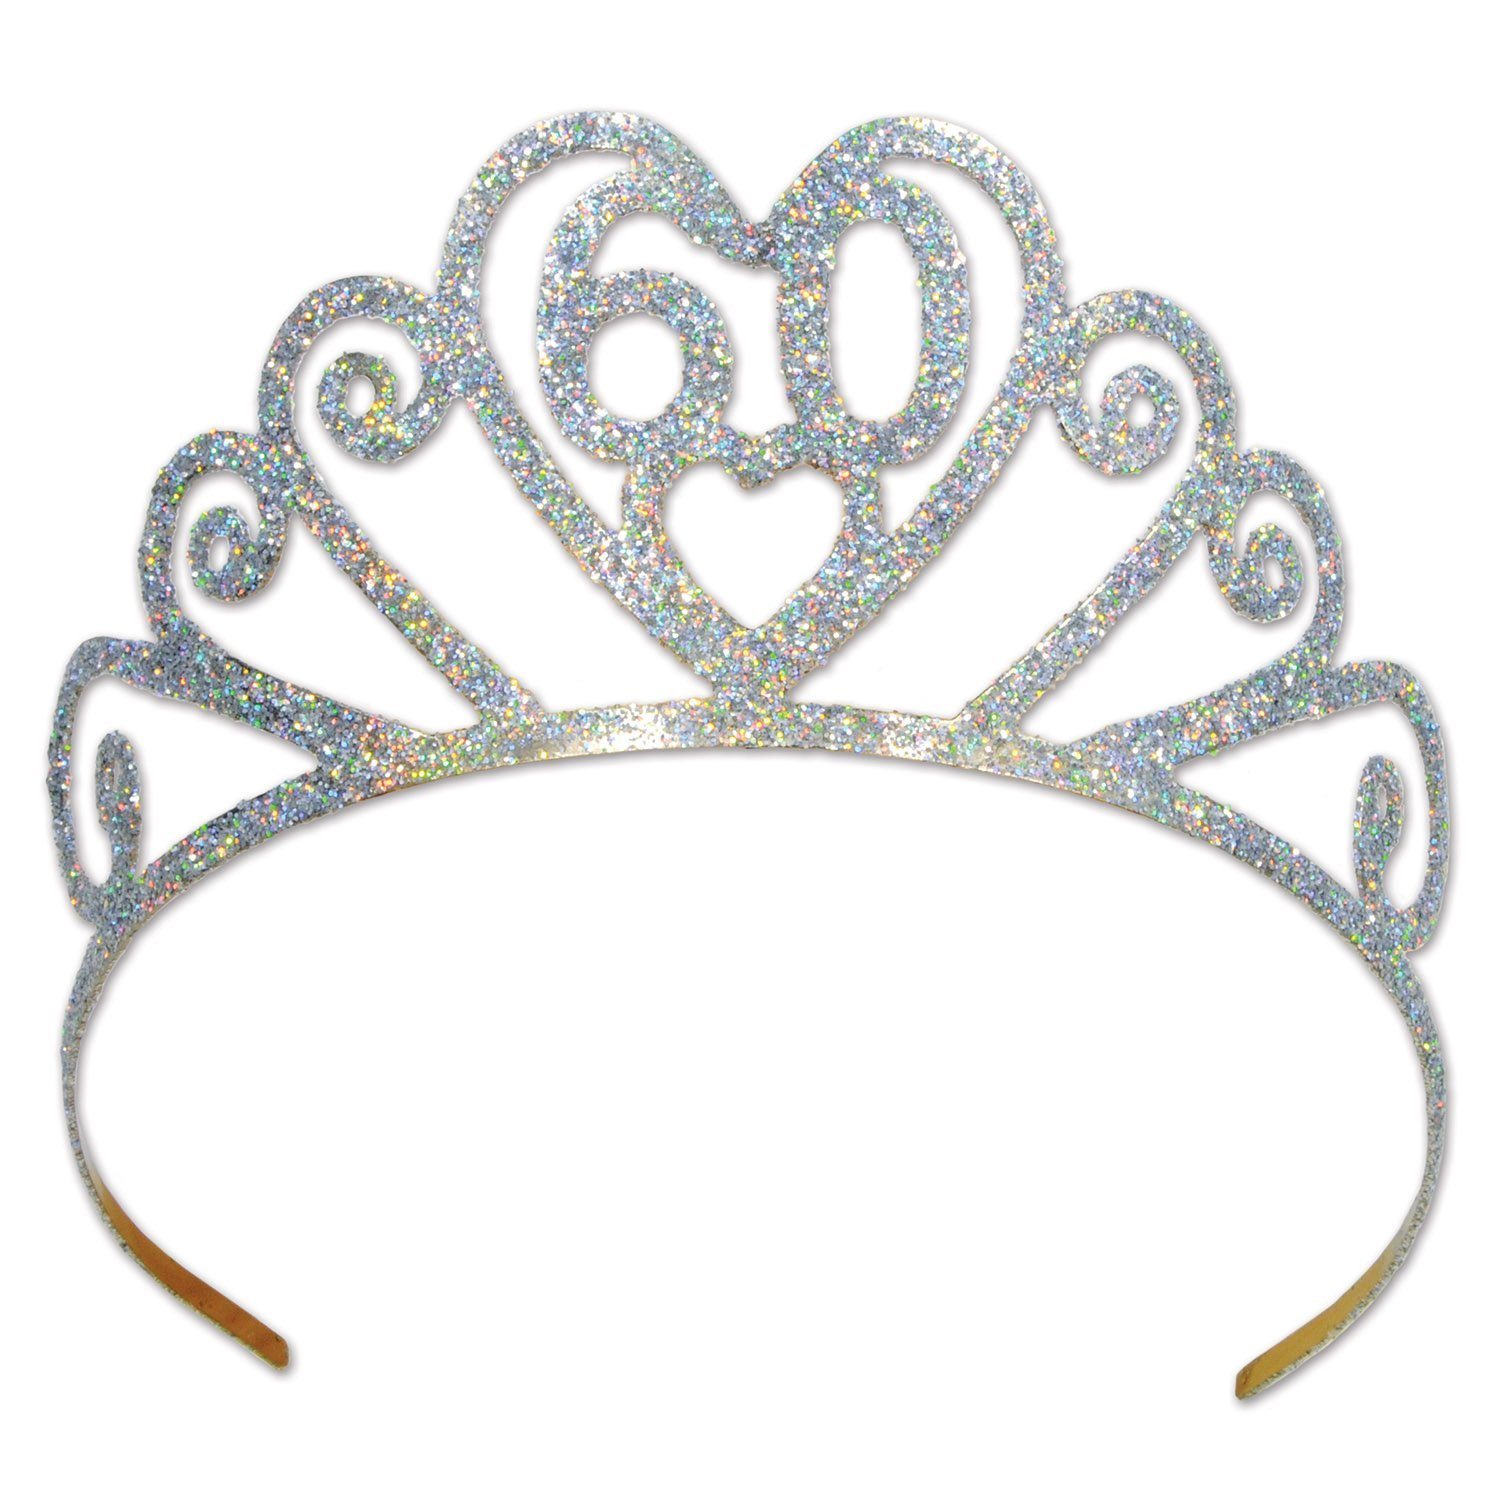 "Beistle 60633-60 Glittered Metal ""60"" Tiara, Silver"